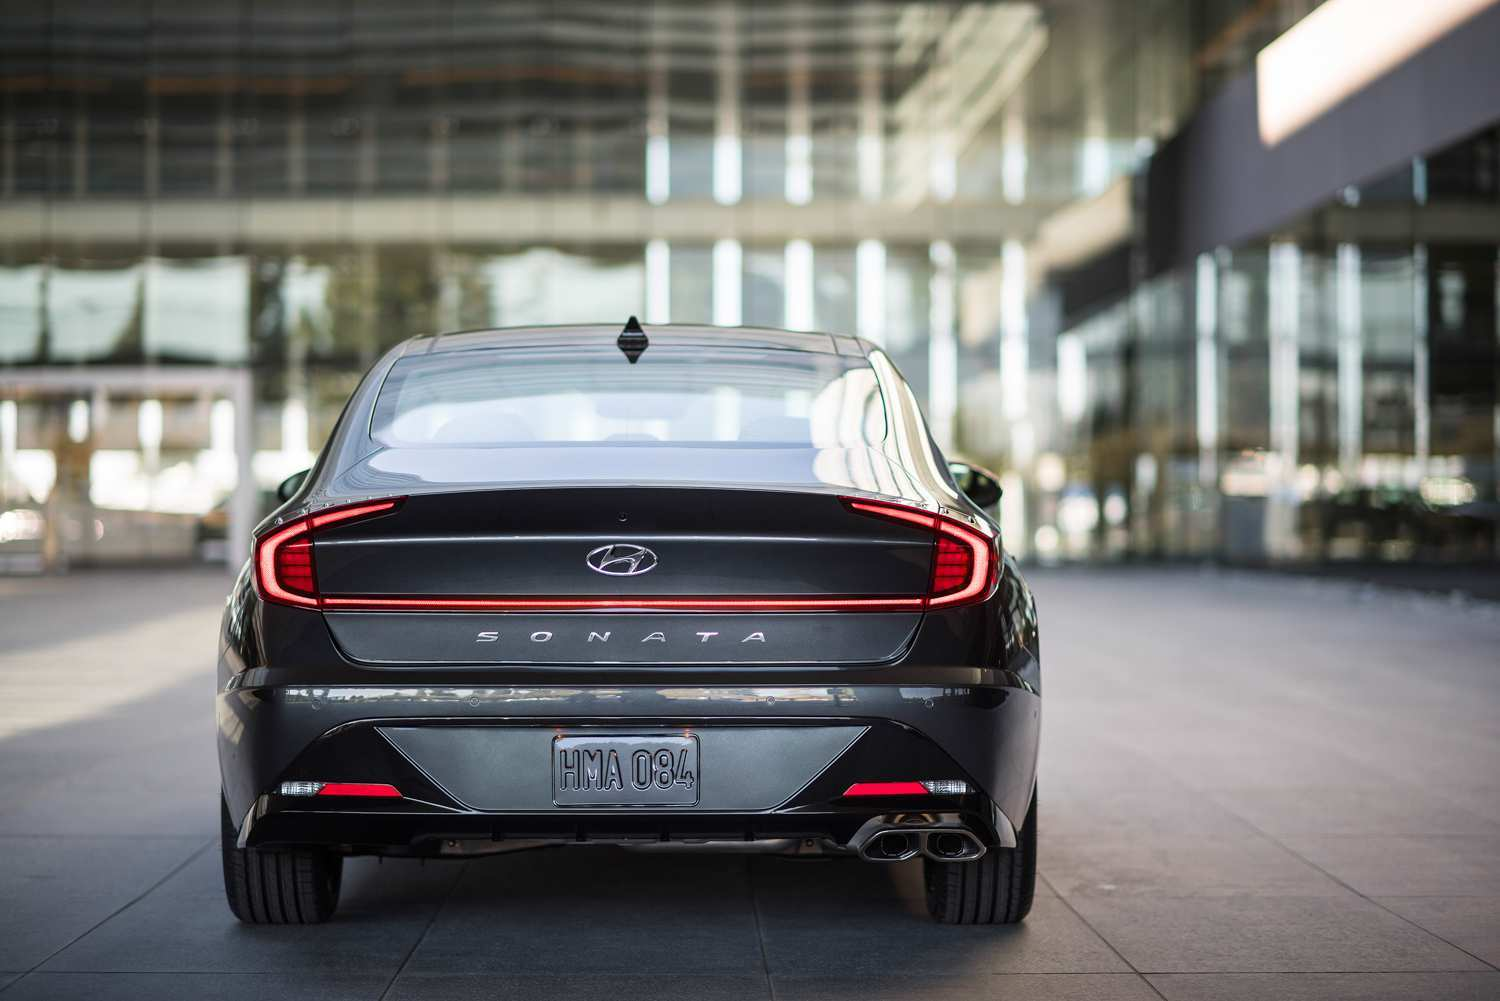 71 Concept of 2020 Hyundai Sonata N Line Picture with 2020 Hyundai Sonata N Line